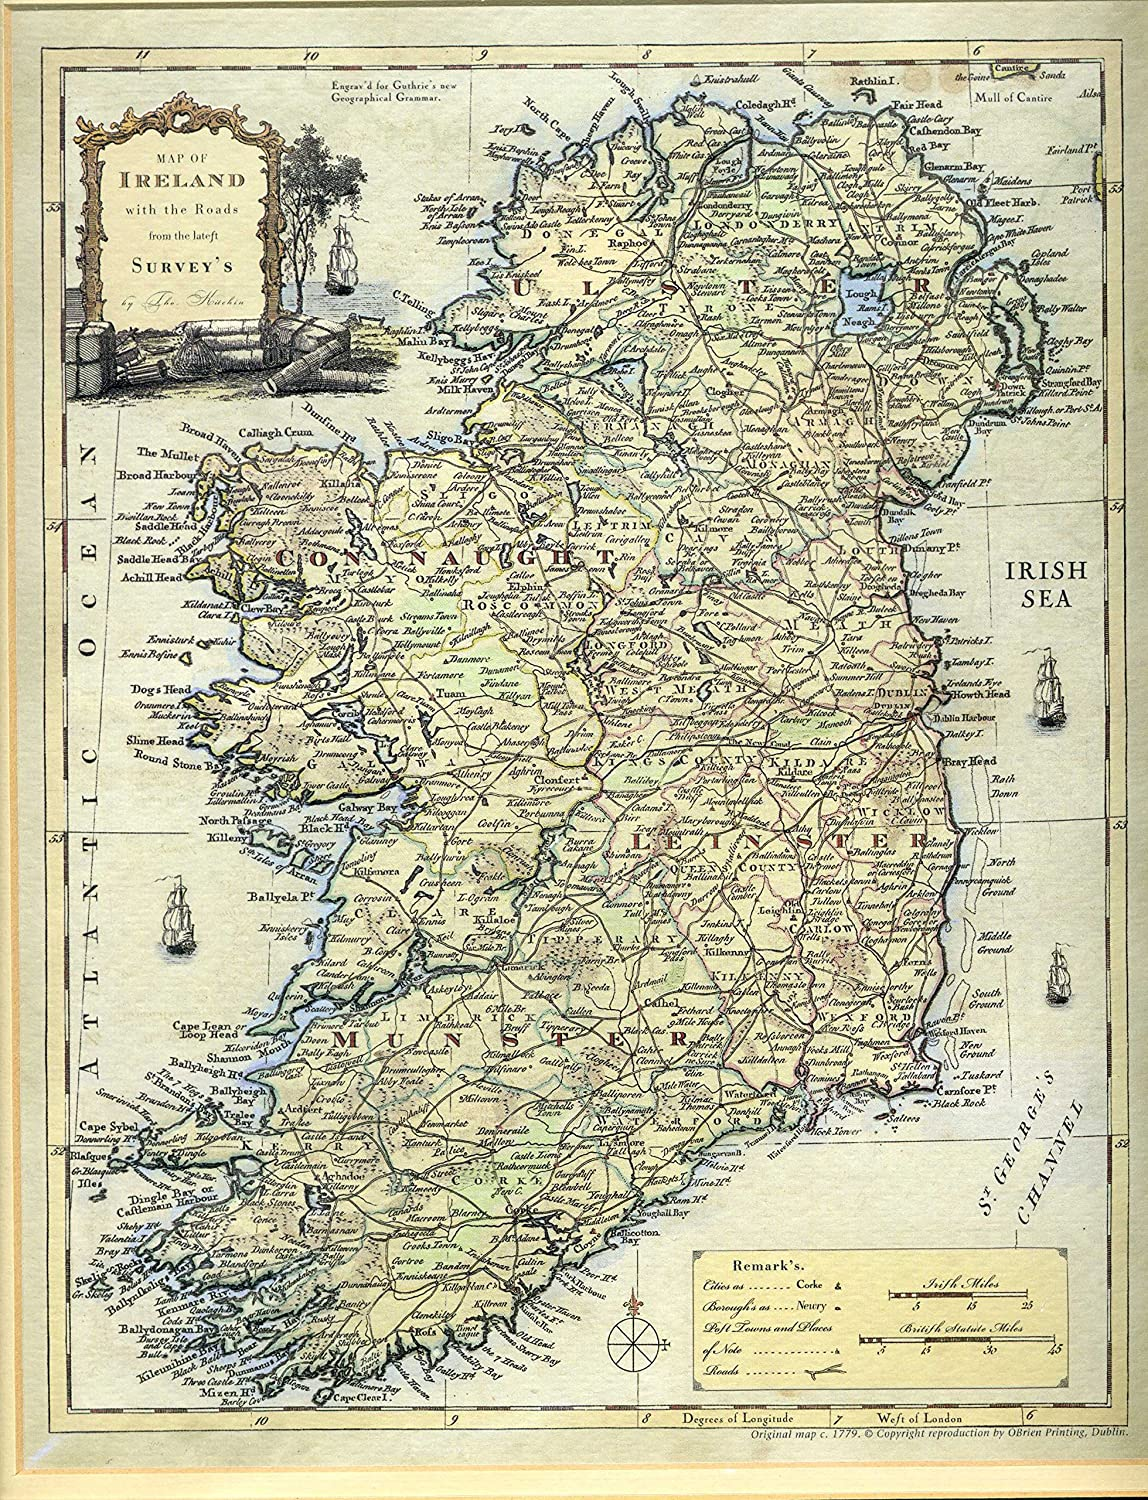 Map Of Ireland Roads.Amazon Com Map Of Ireland With The Roads From The Latest Survey S